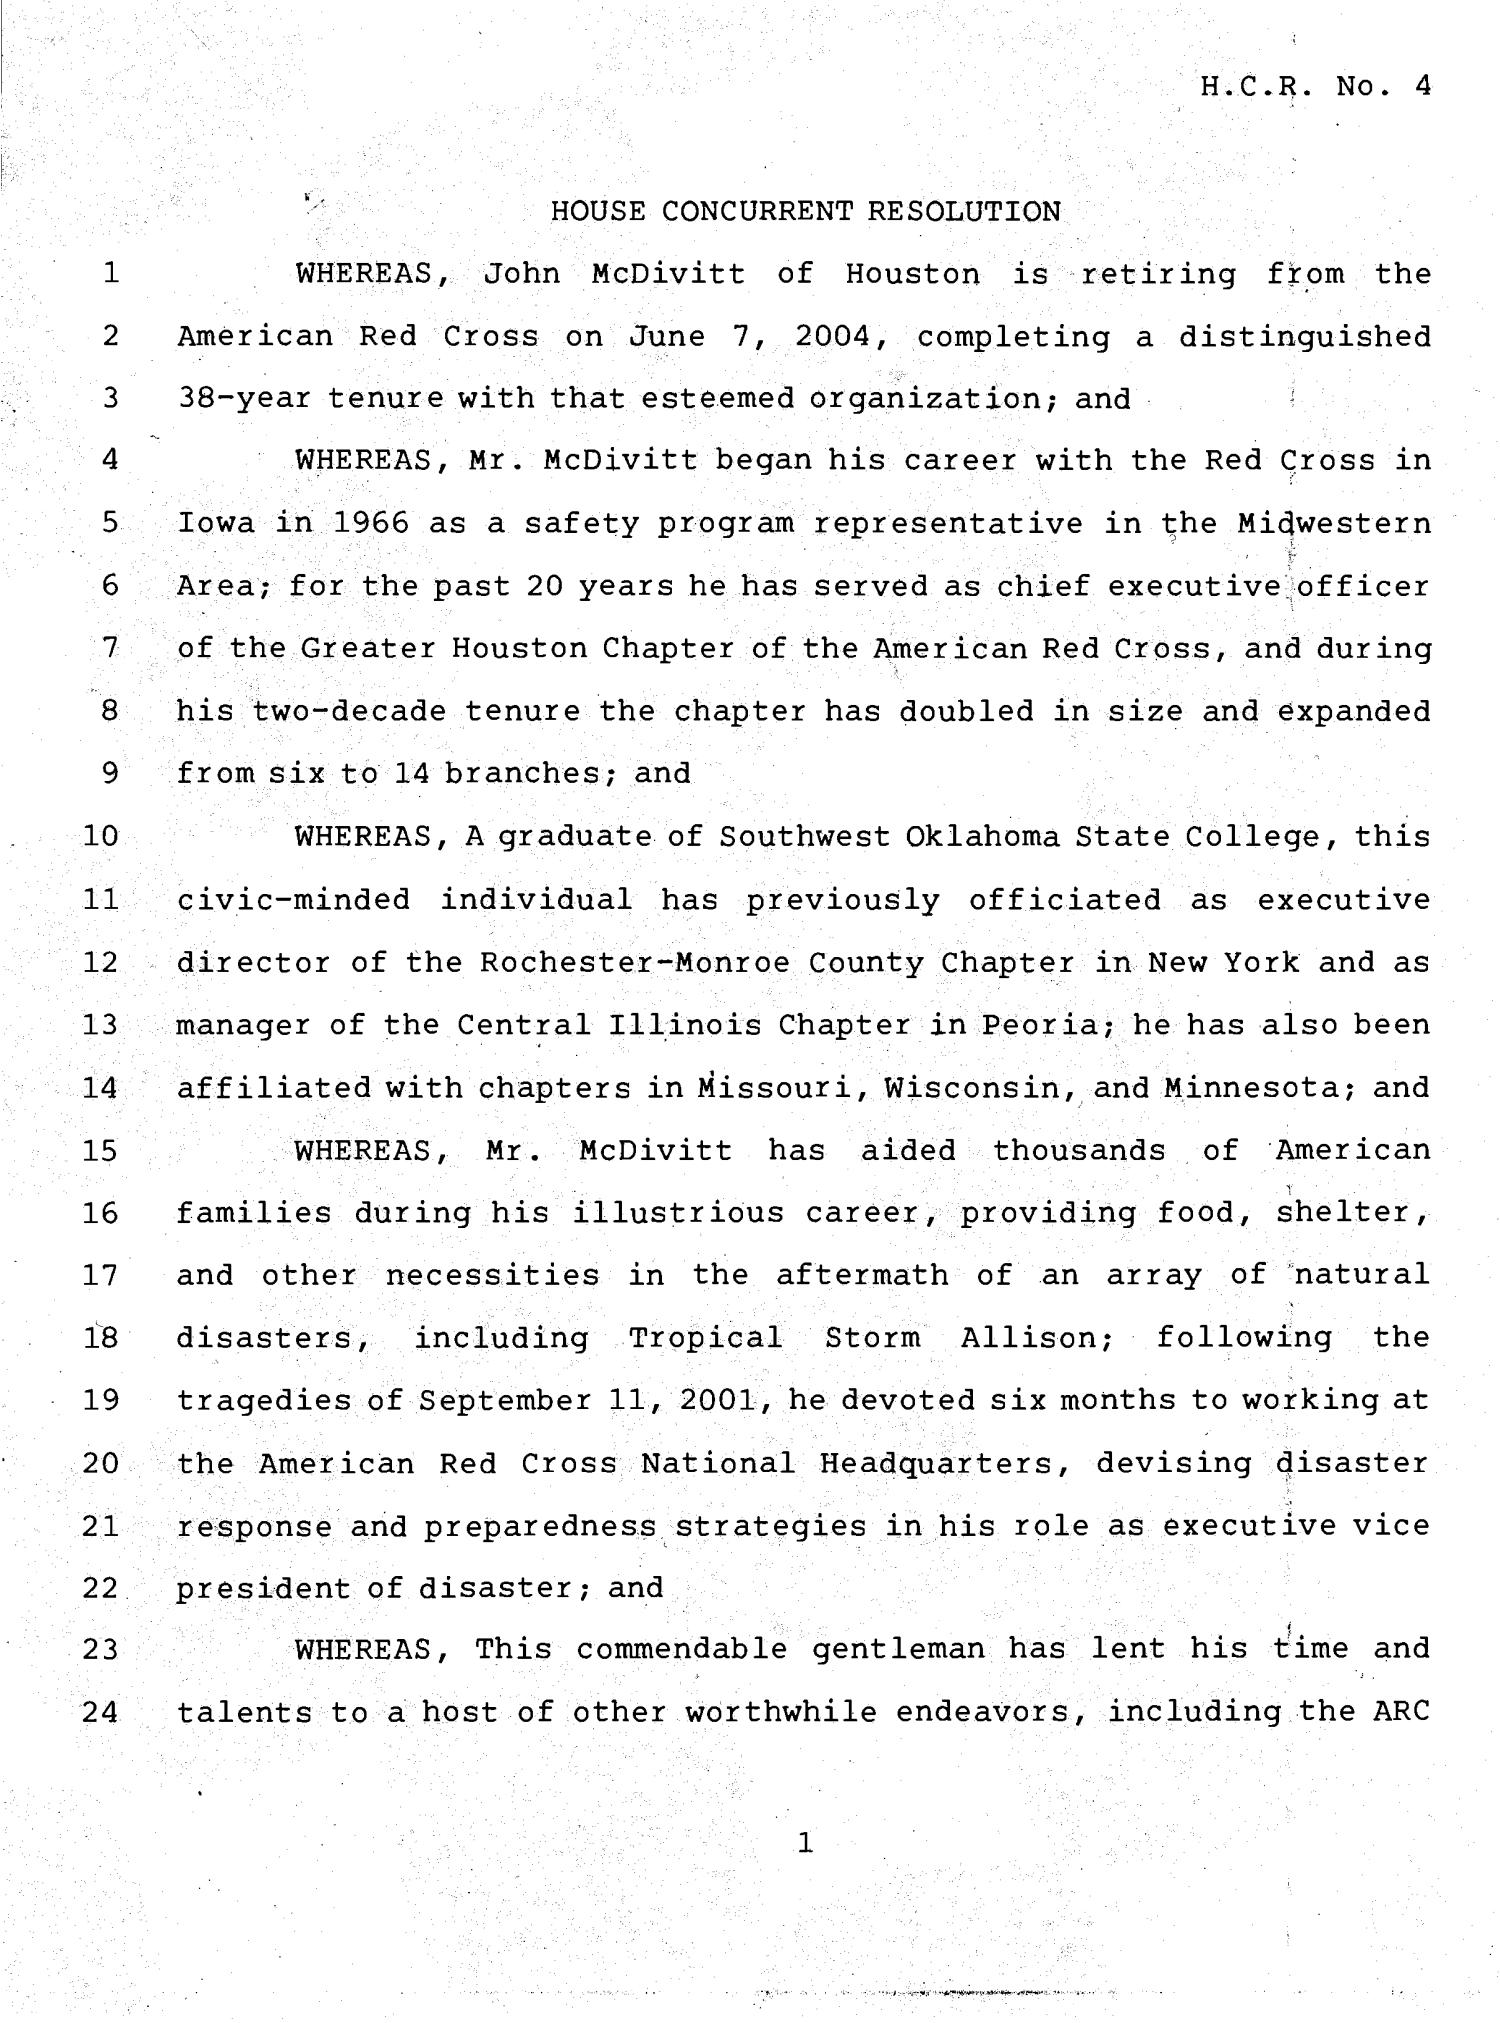 78th Texas Legislature, Fourth Called Session, House Concurrent Resolution 4                                                                                                      [Sequence #]: 1 of 3